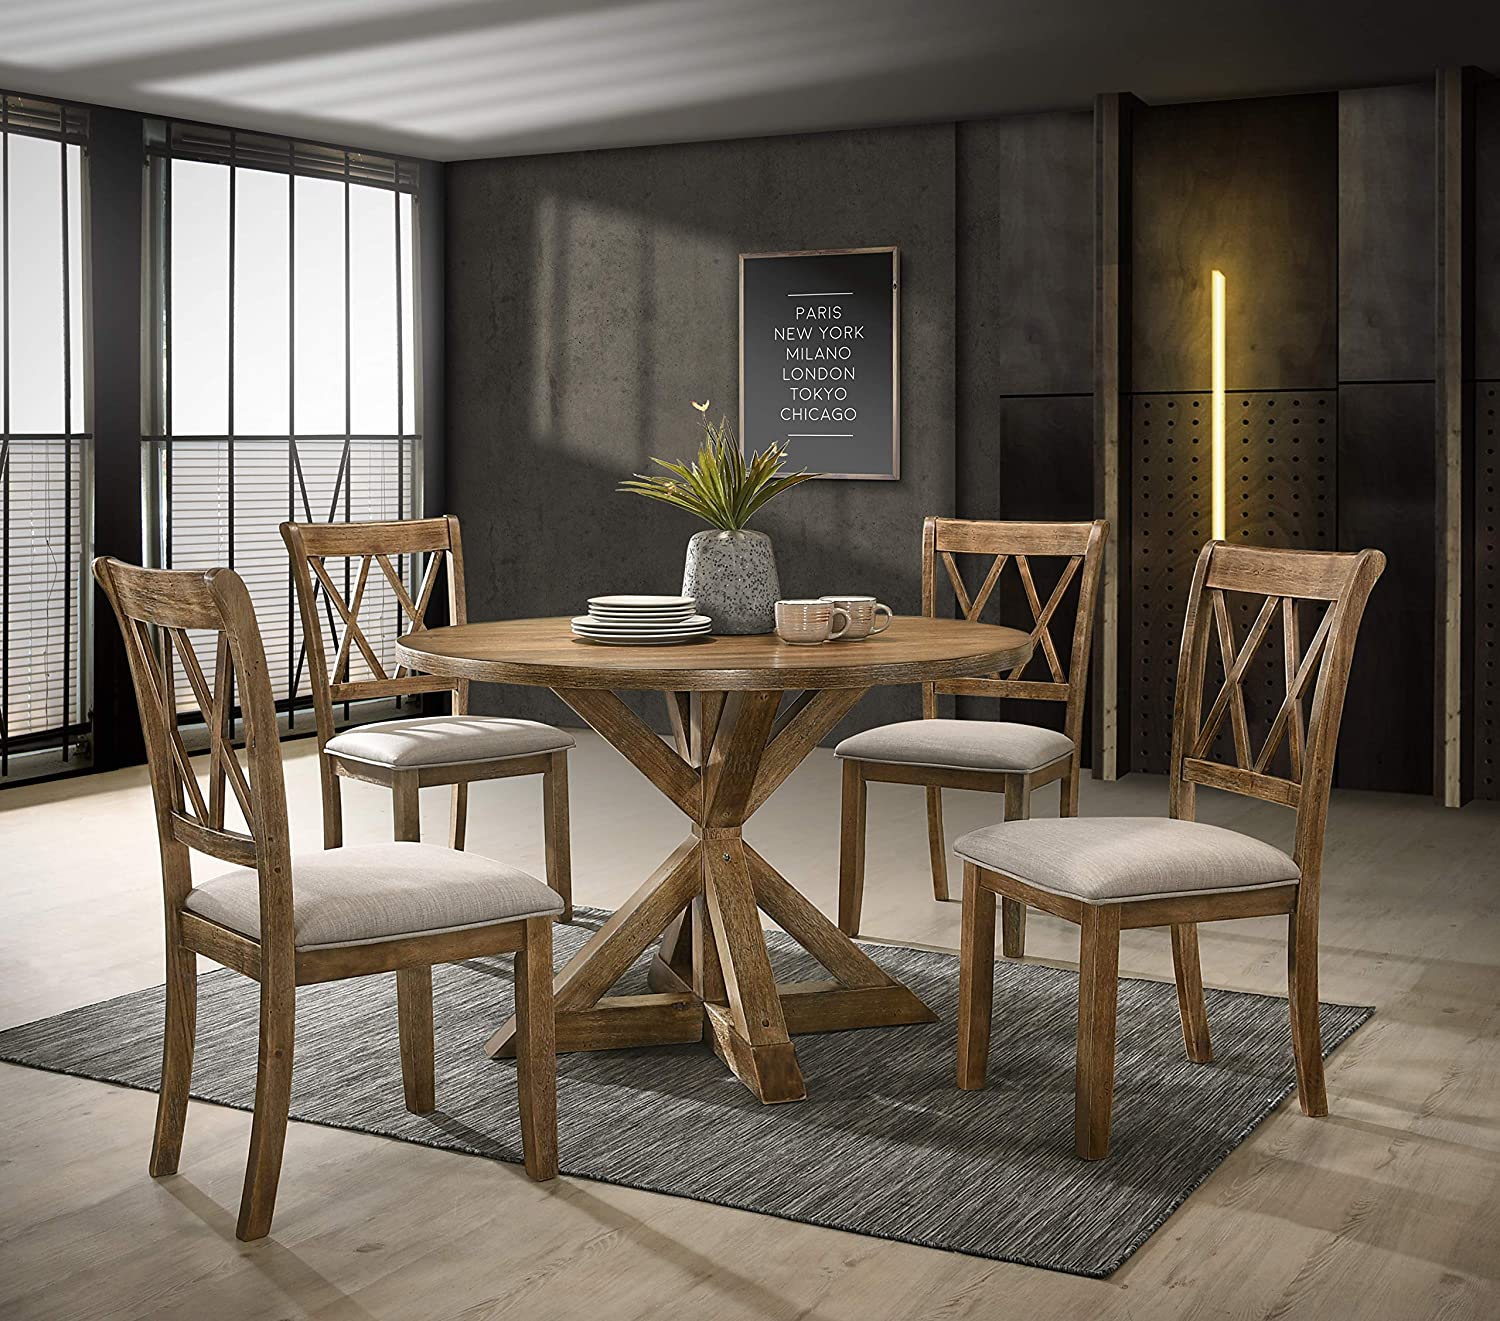 Roundhill Furniture Windvale Cross-Buck Wood 5-Piece Dining Set, Brown